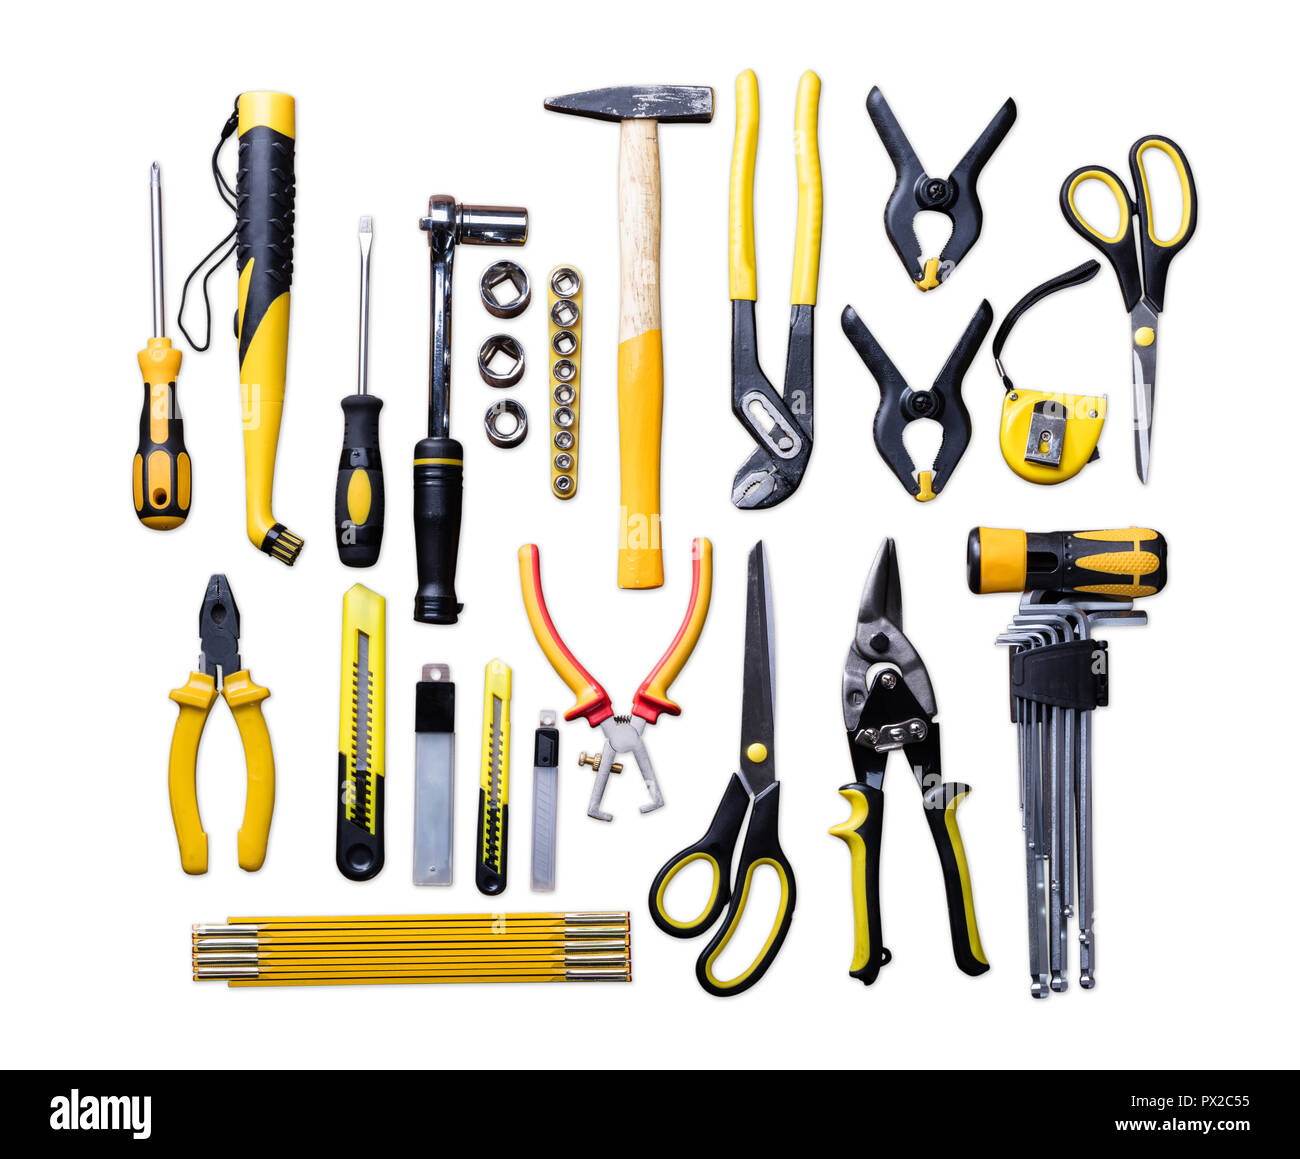 Elevated View Of Various Construction Tools On White Background - Stock Image